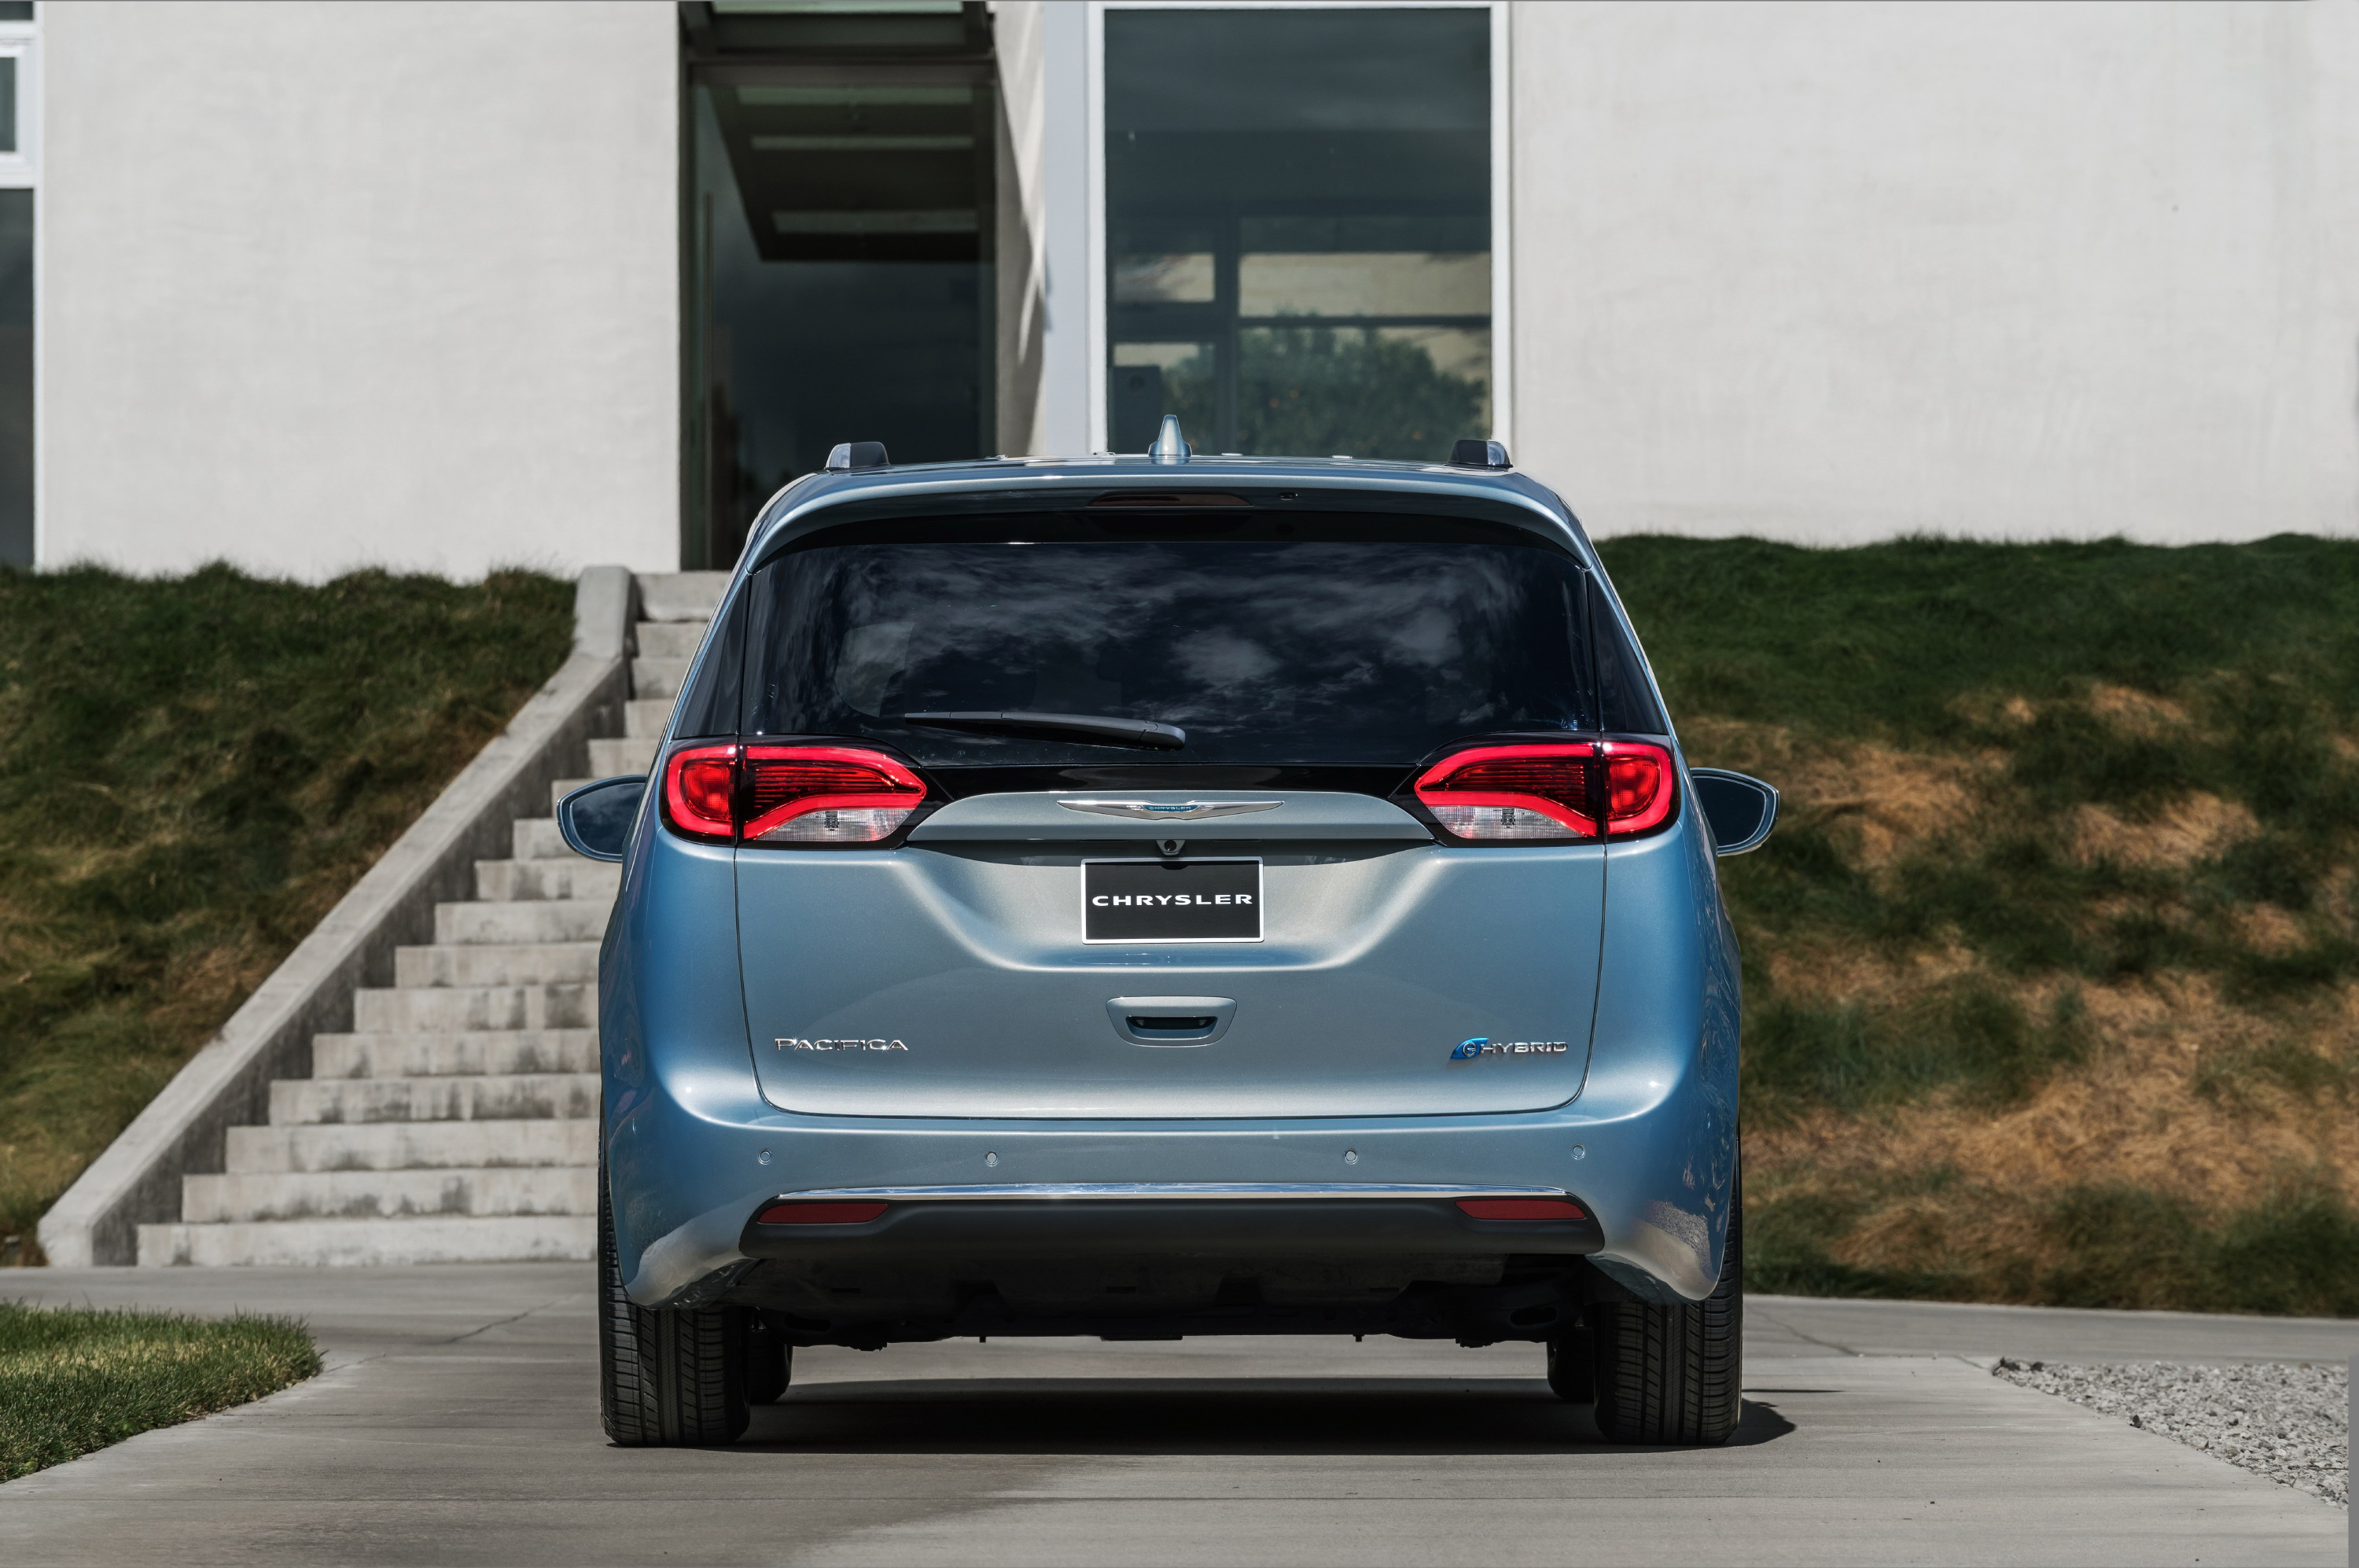 gallery share image and download best pacifica chrysler